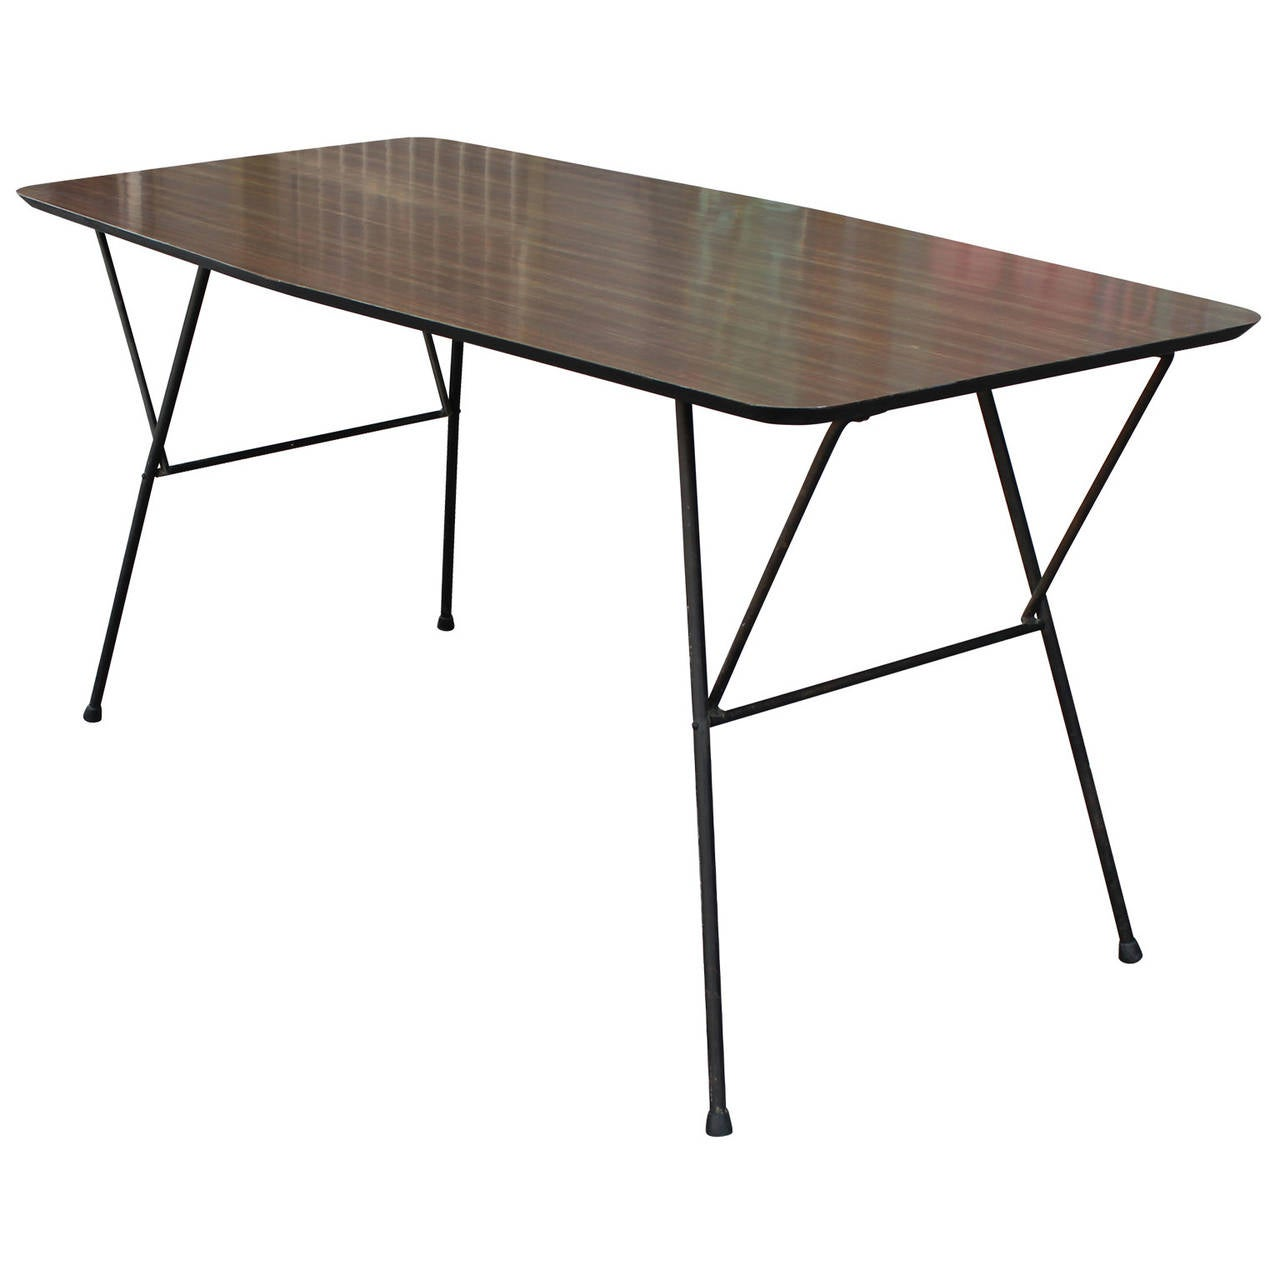 Mid century modern versi table by tepper meyer for fred meyer at 1stdibs - Archives departementales 33 tables decennales ...